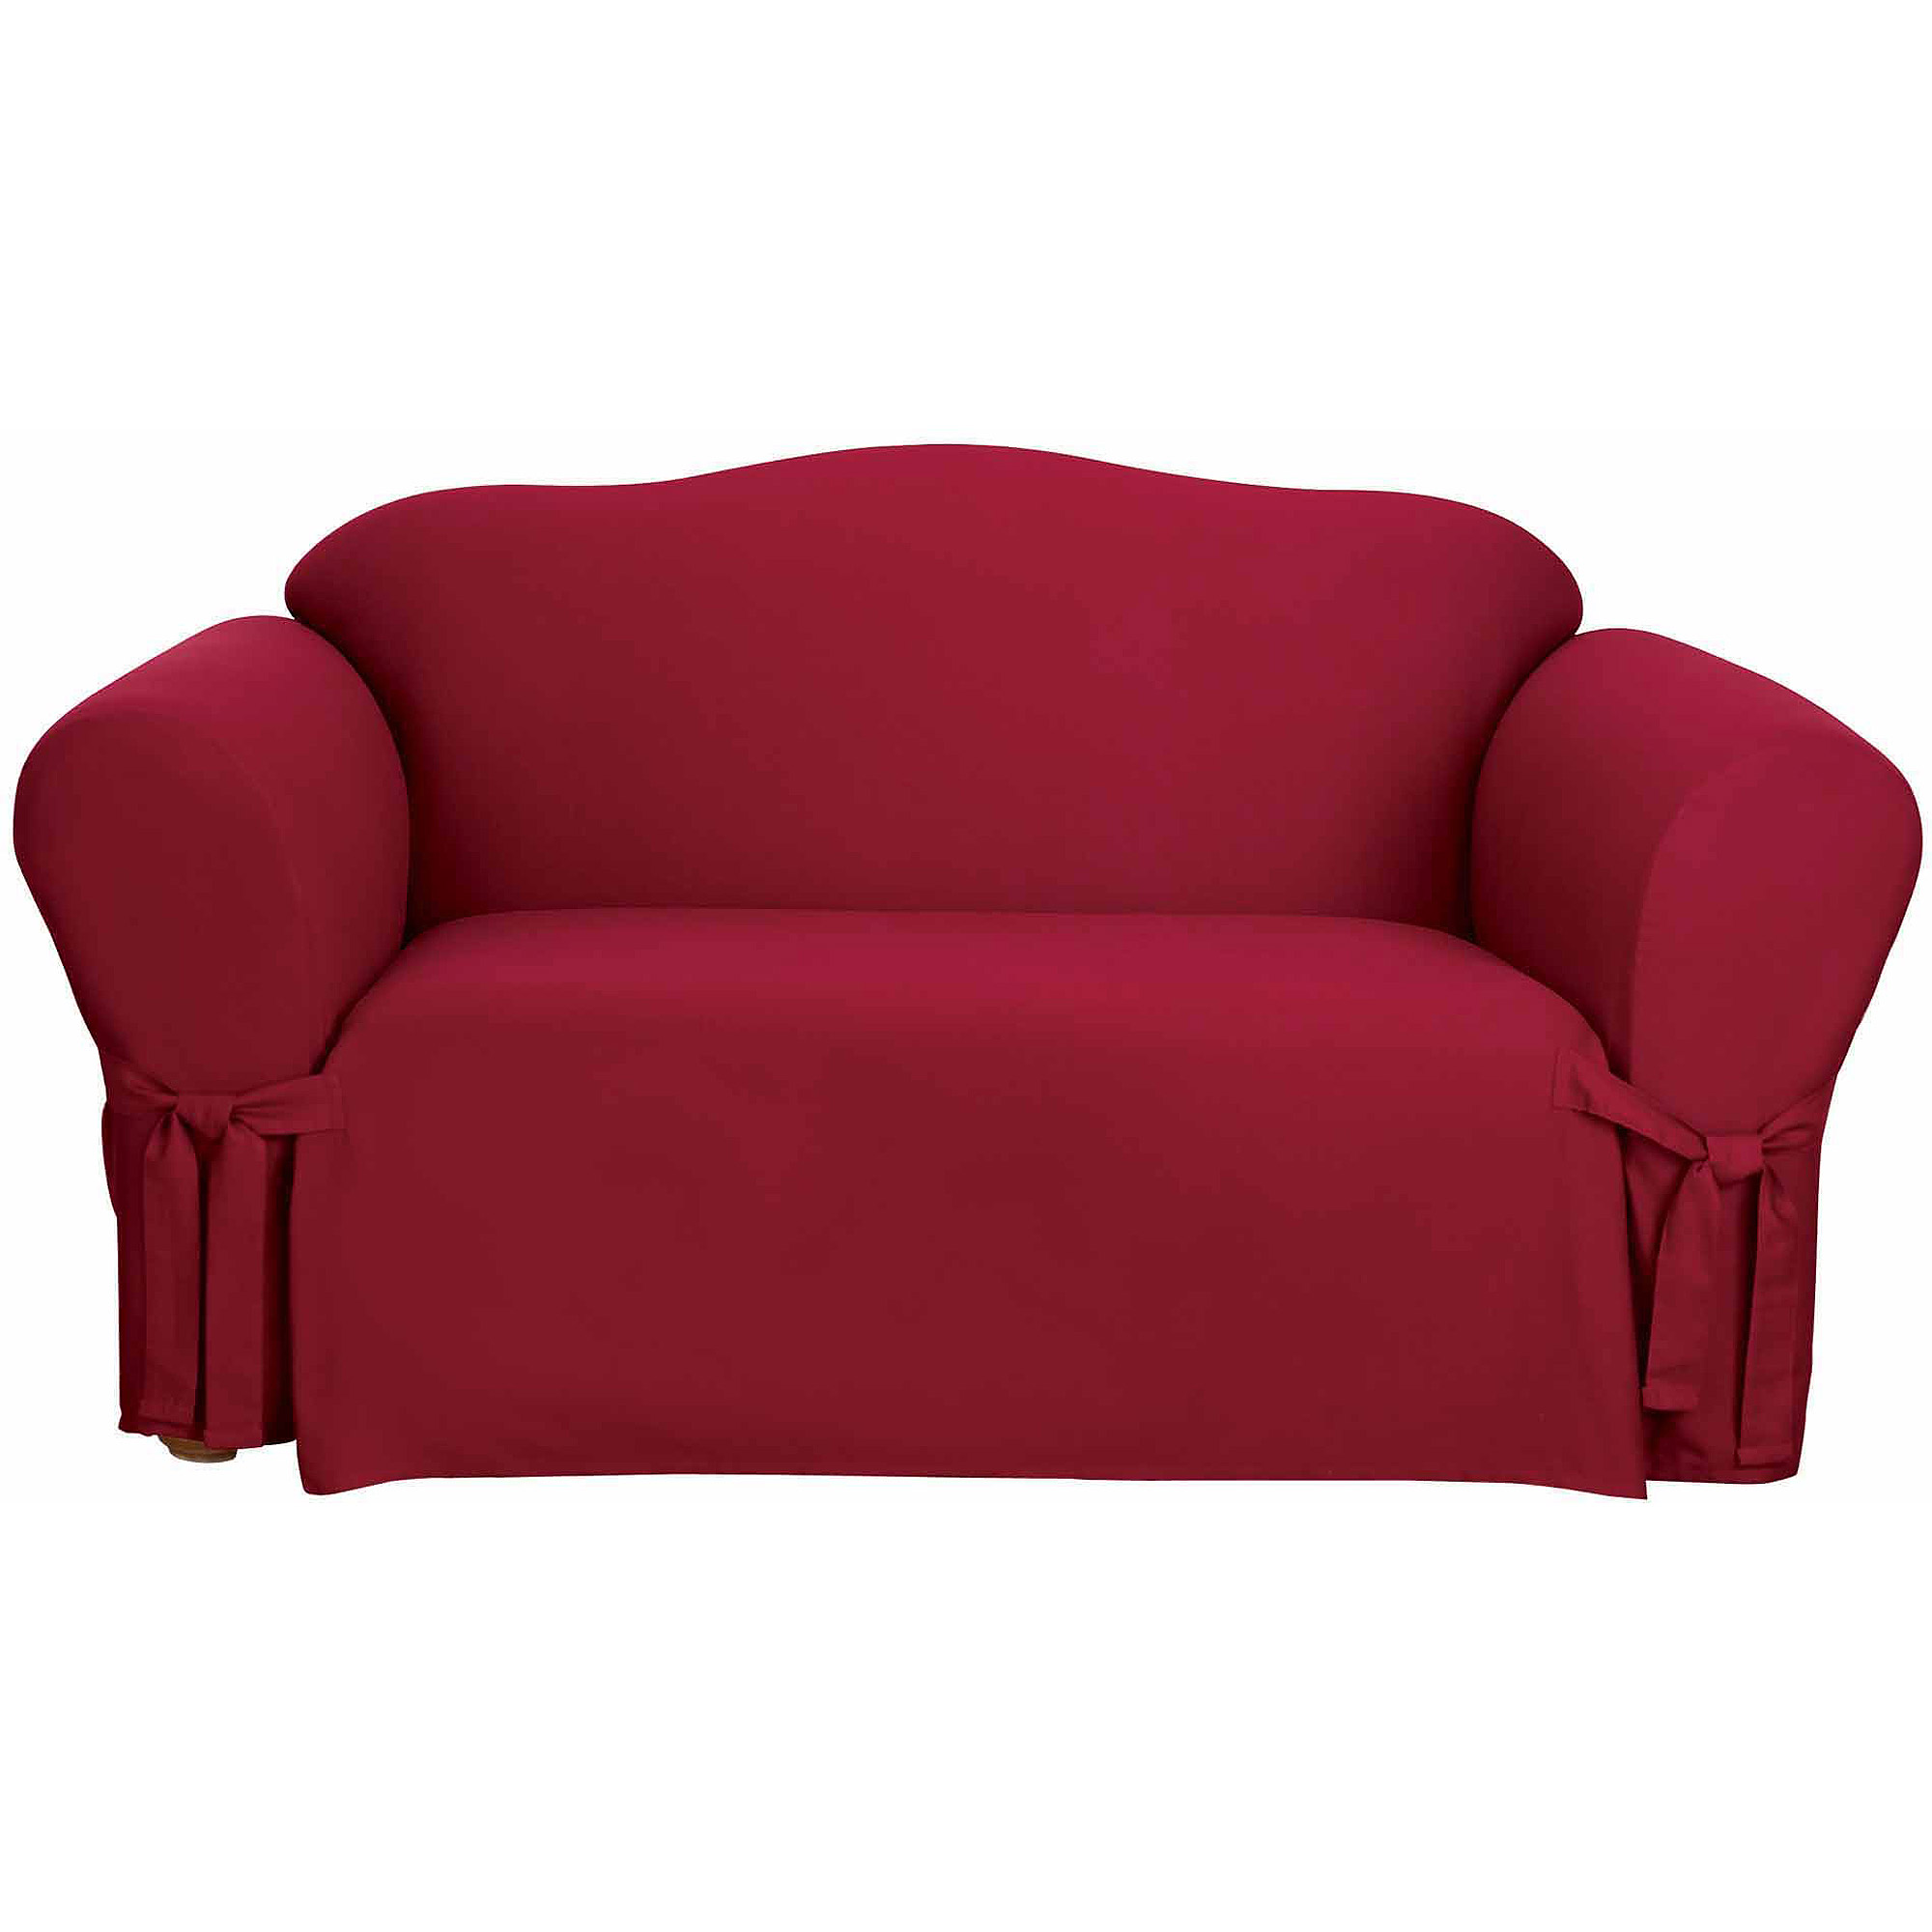 slipcover fit loveseat sure doherty sets house contemporary slipcovers